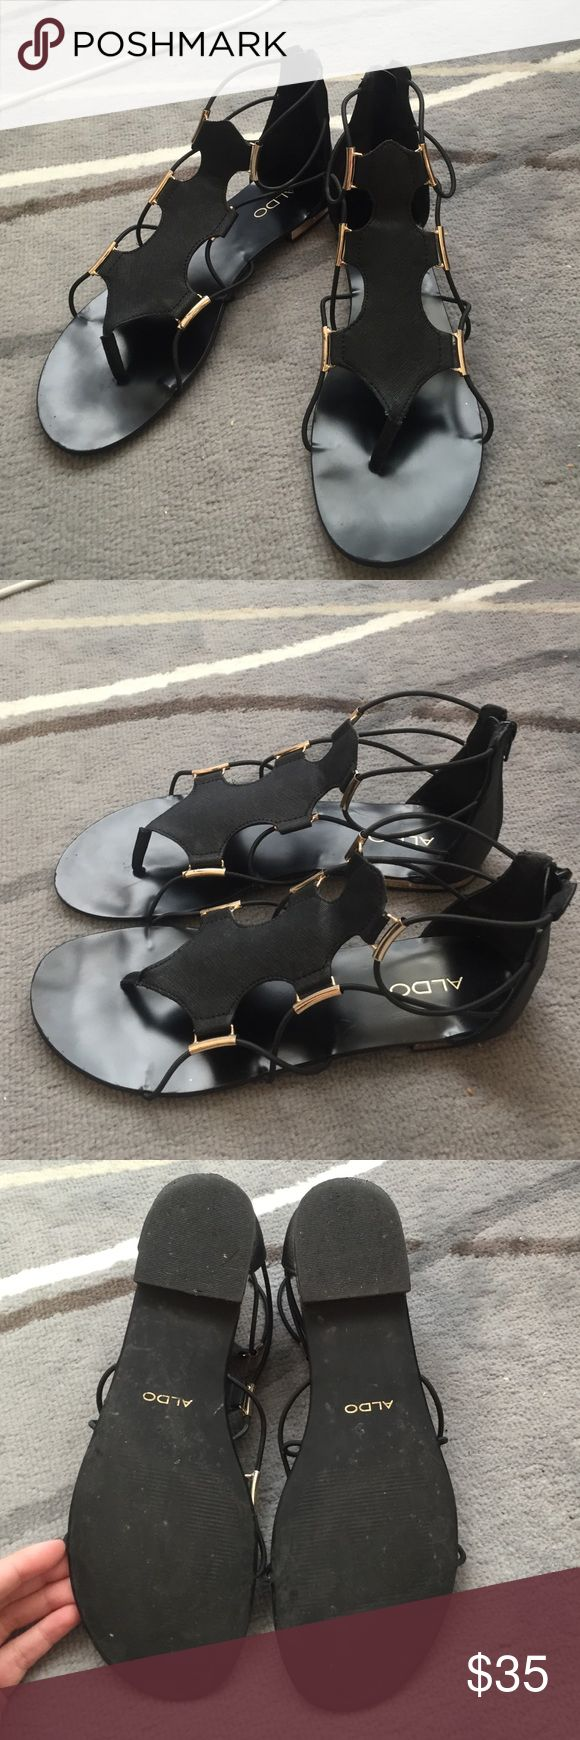 ALDO Zeanna Gladiator Flat Sandals ALDO Zeanna Gladiator Flat Sandals. Gently used condition. Aldo Shoes Sandals